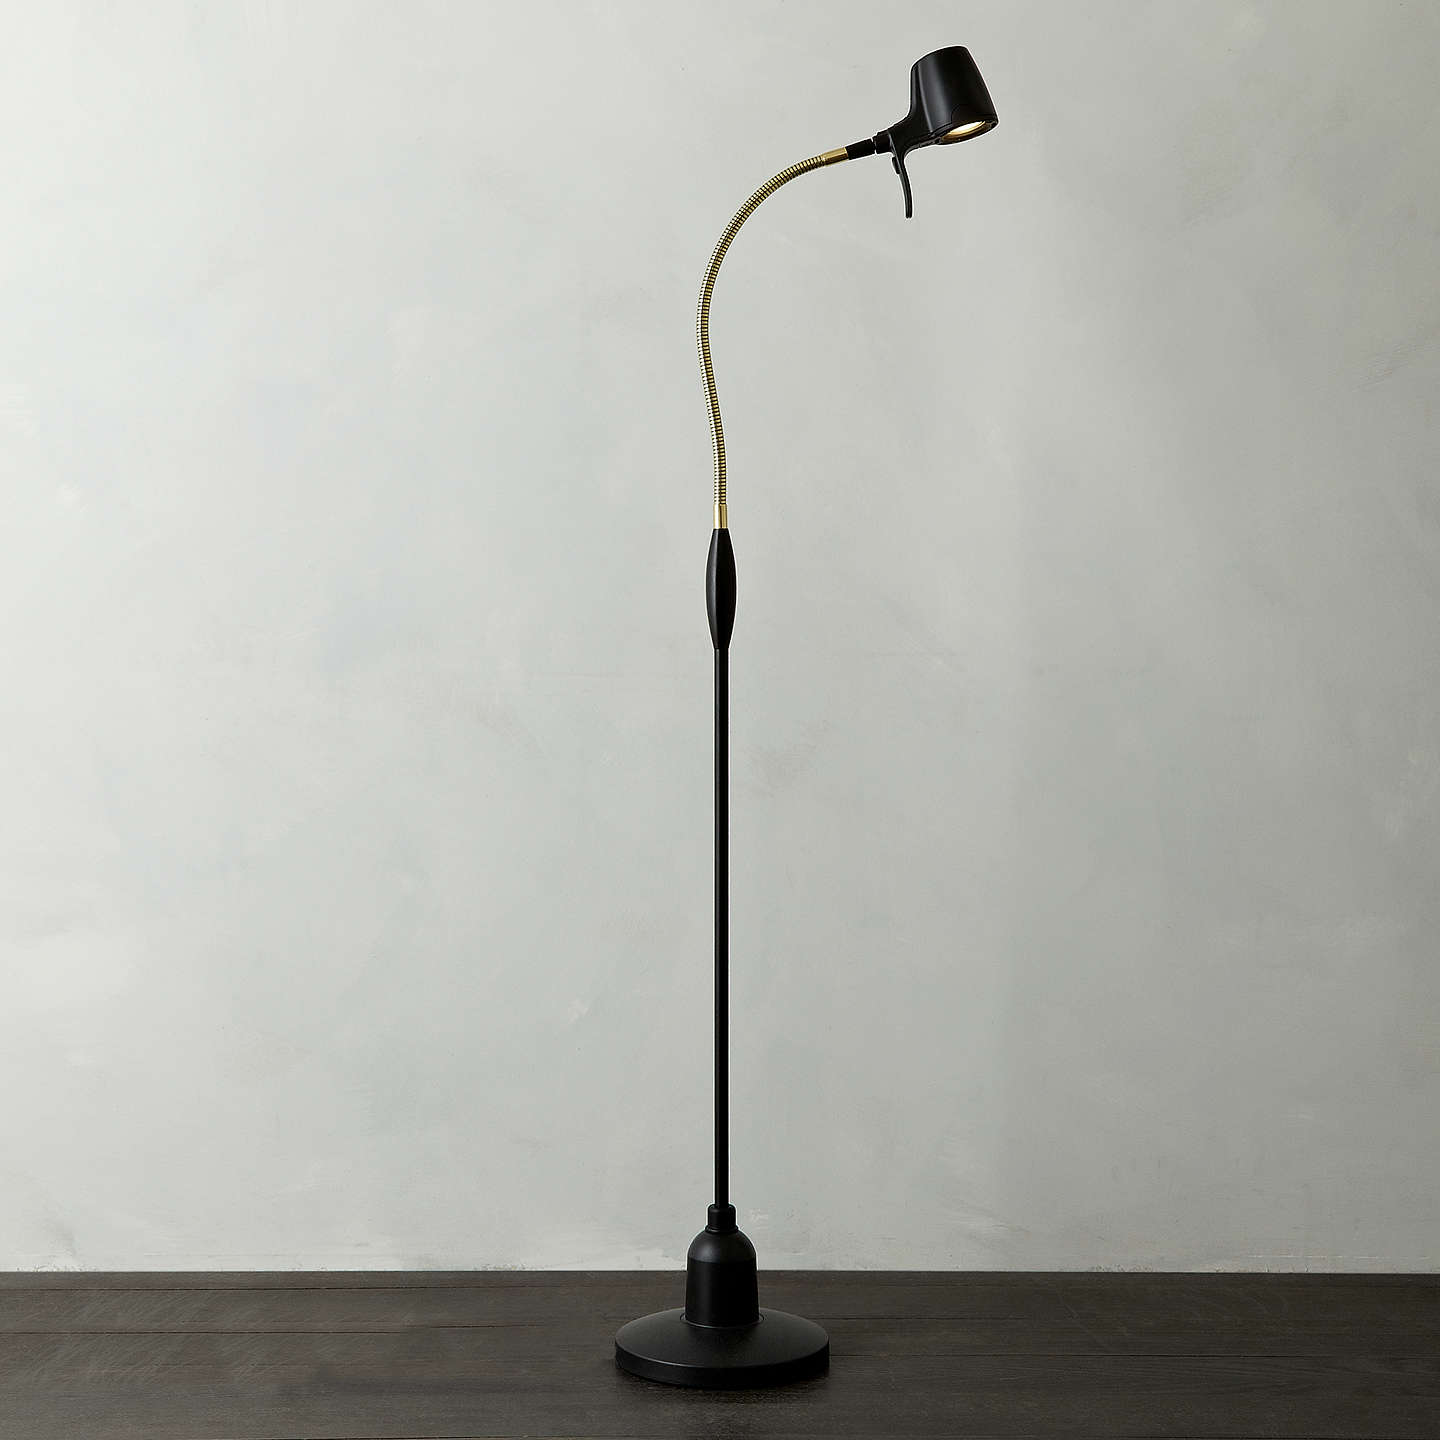 Serious readers high definition floor lamp at john lewis buyserious readers high definition floor lamp blackbrass online at johnlewis mozeypictures Choice Image